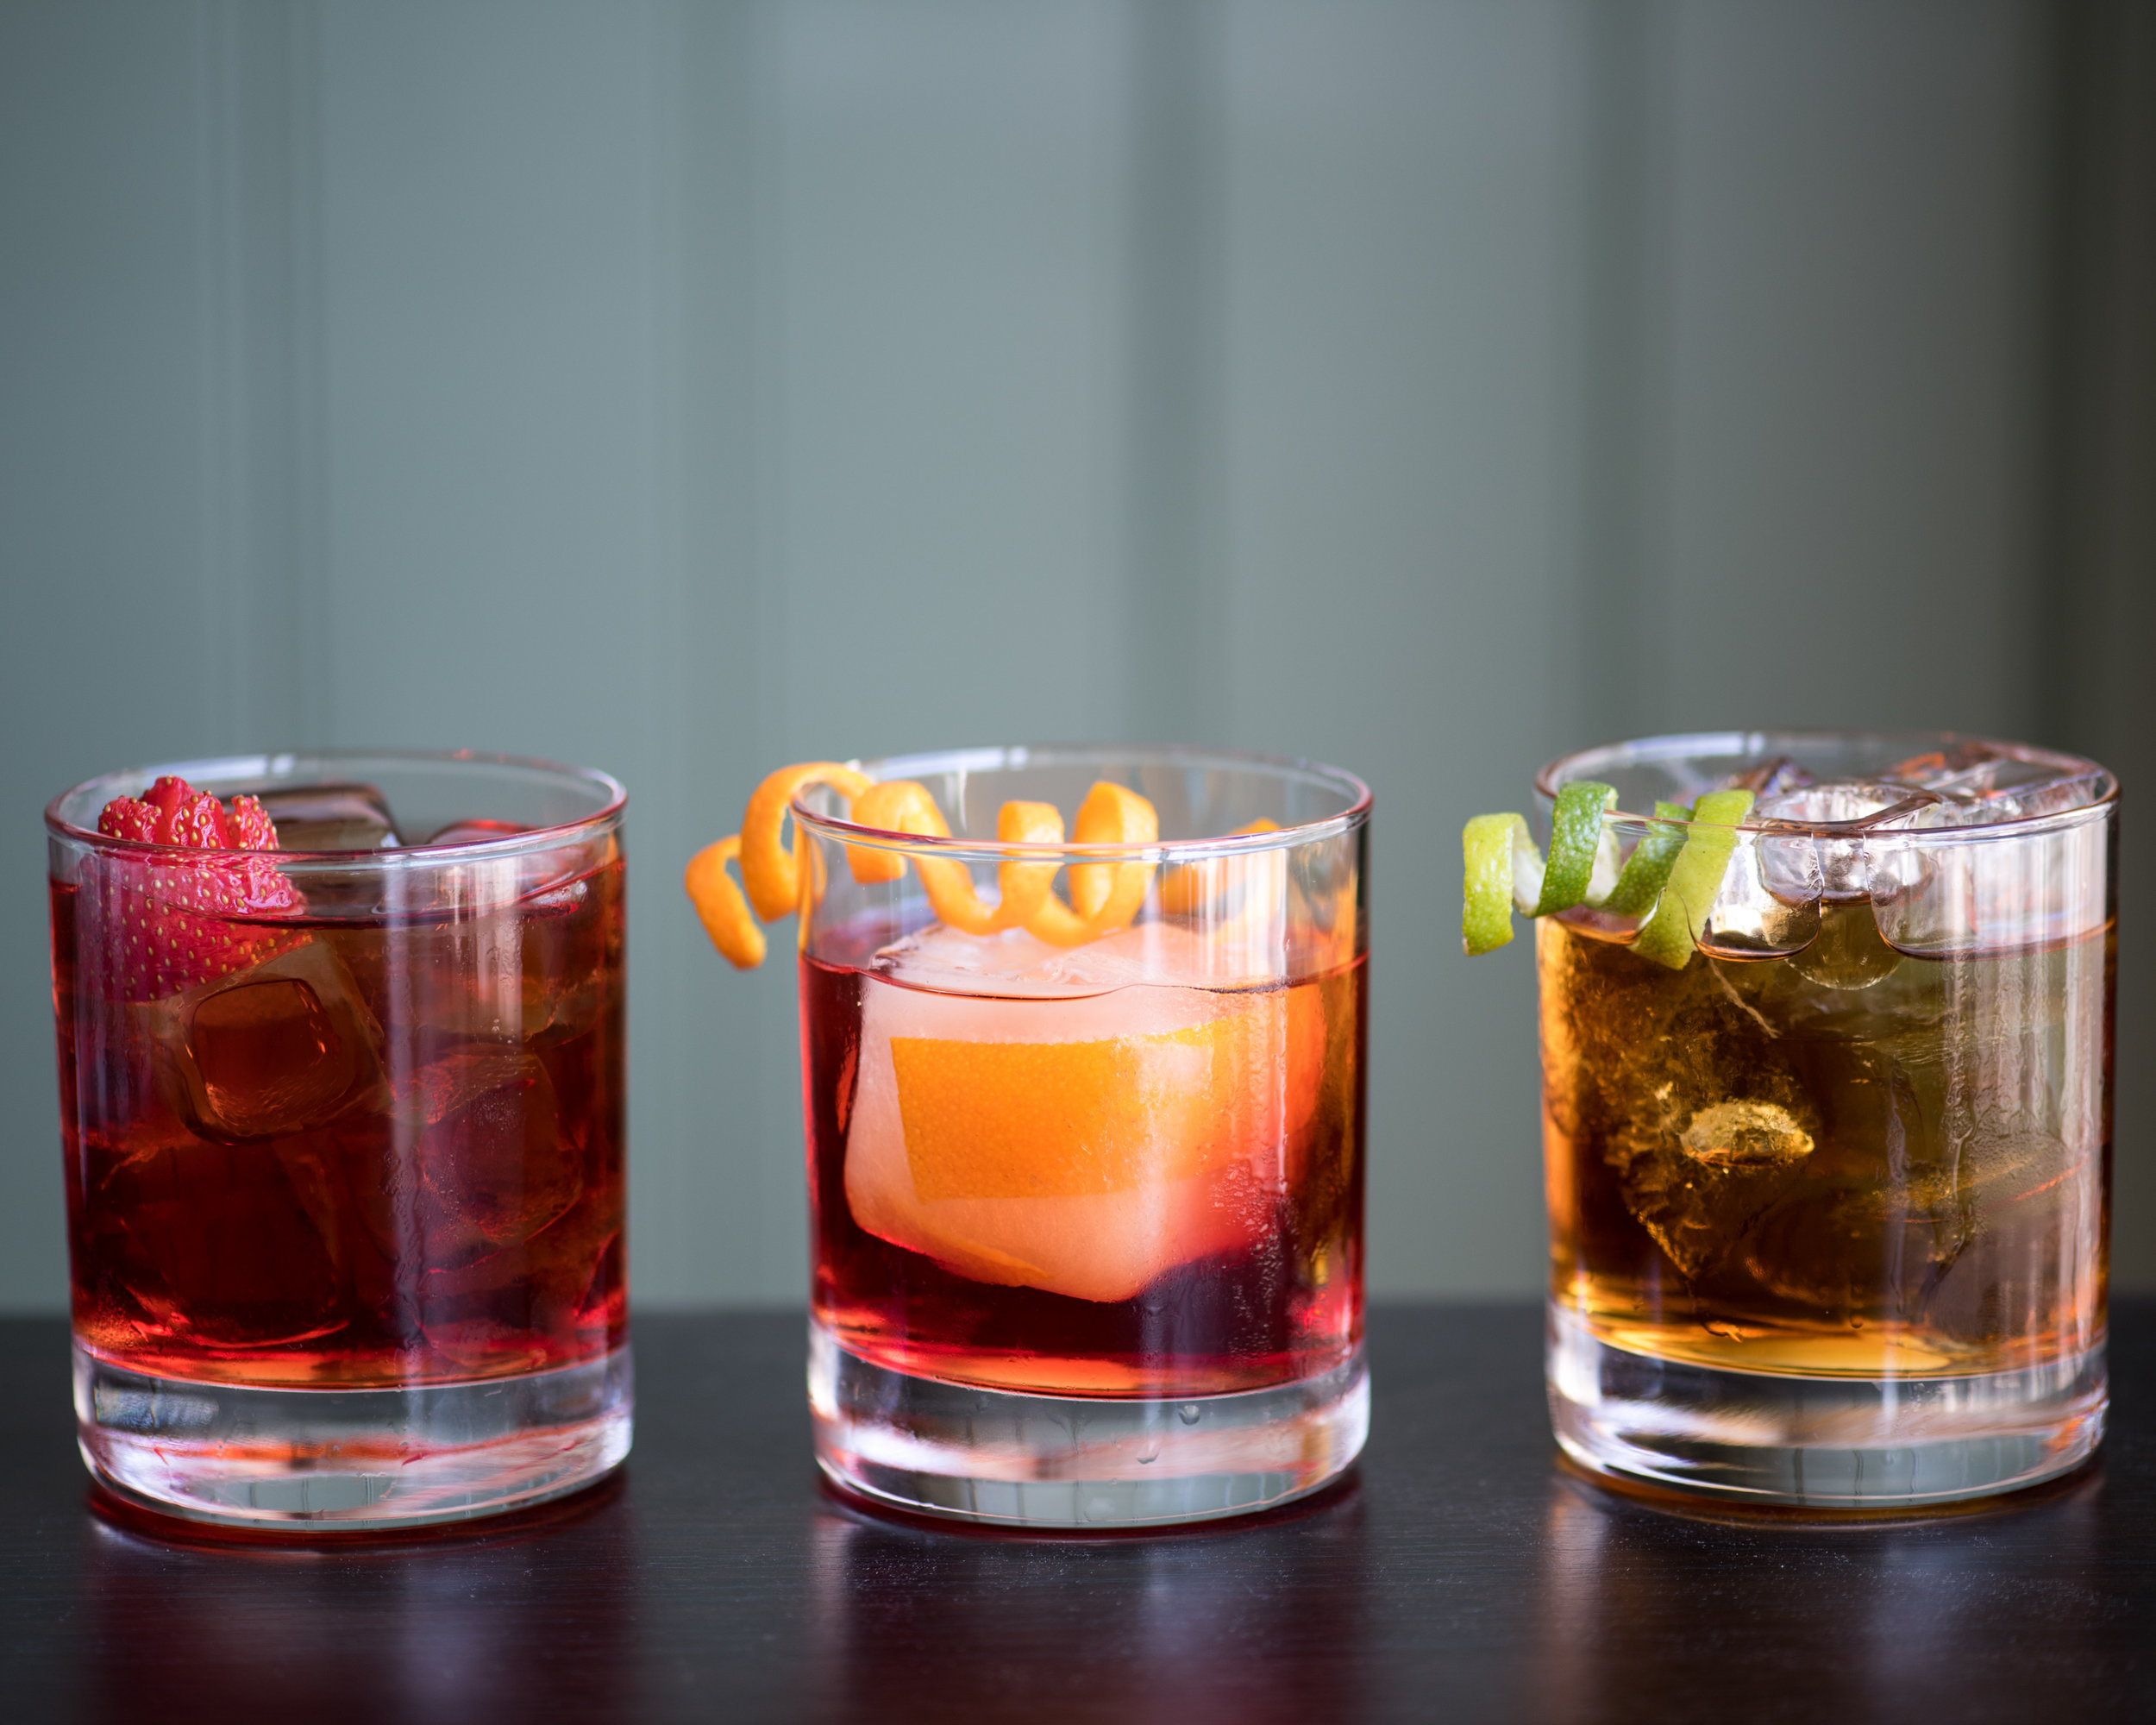 Some of our Negronis (from the left and side): Mediterranean Negroni, Aged Negroni and Negramaro.